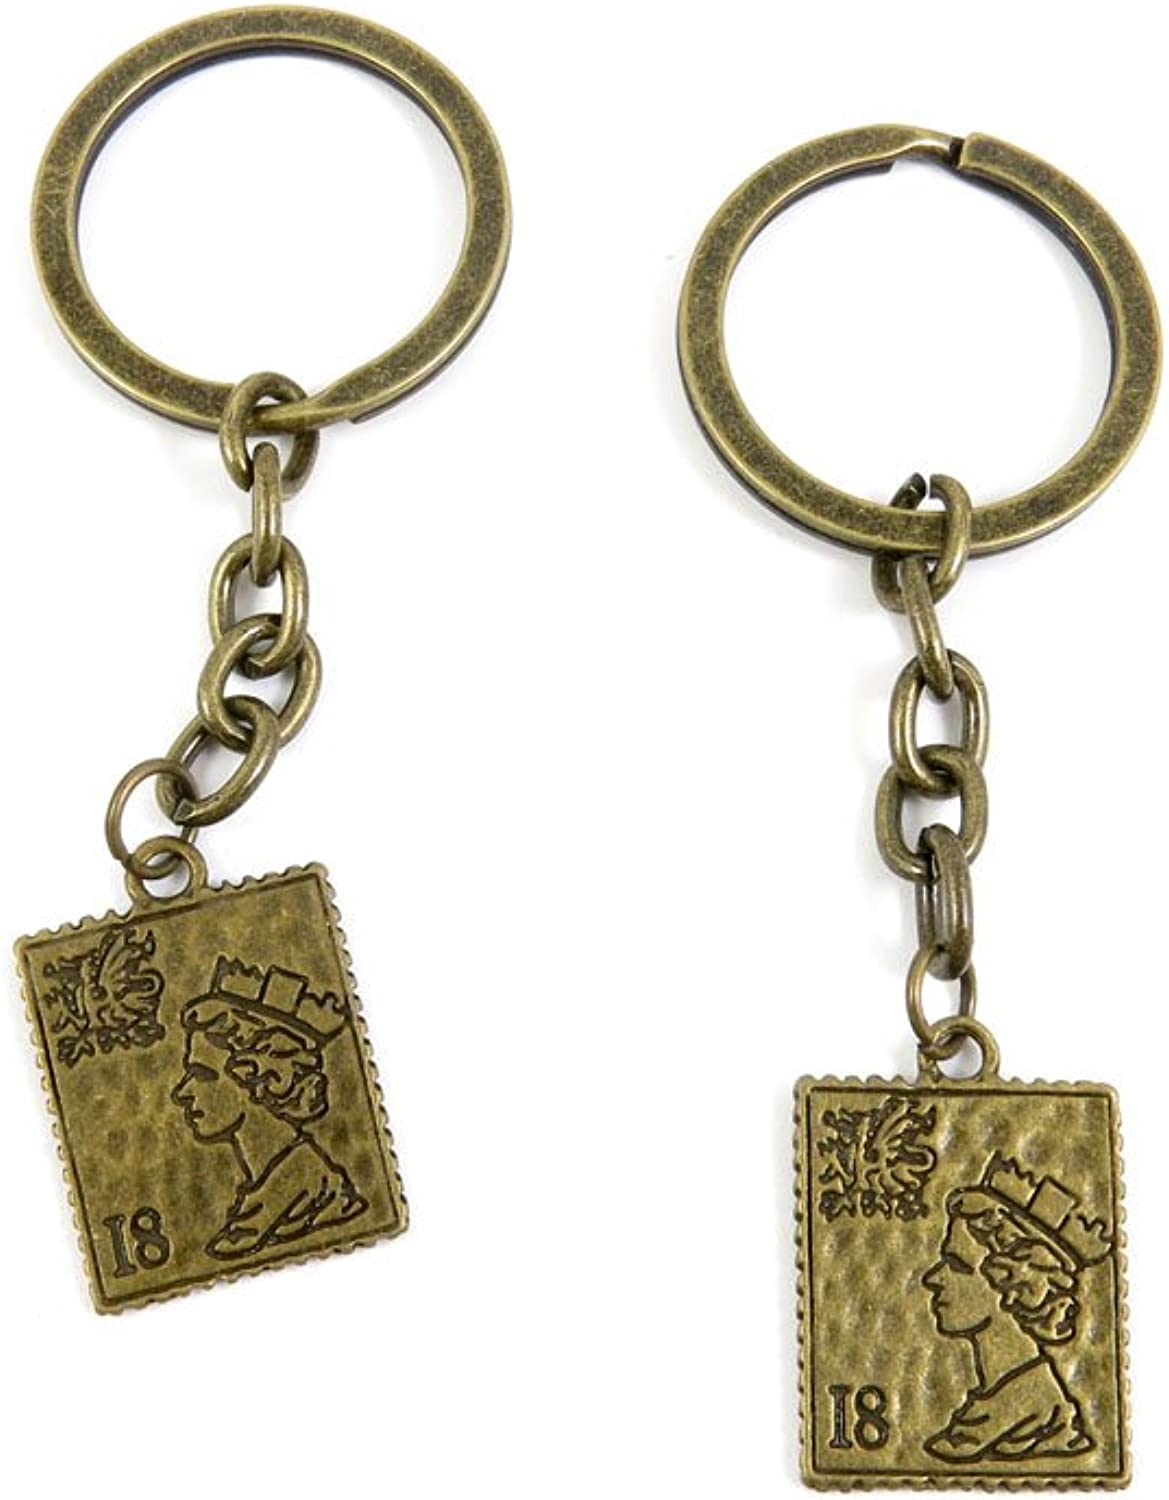 160 Pieces Fashion Jewelry Keyring Keychain Door Car Key Tag Ring Chain Supplier Supply Wholesale Bulk Lots K8PE4 Queen Stamp